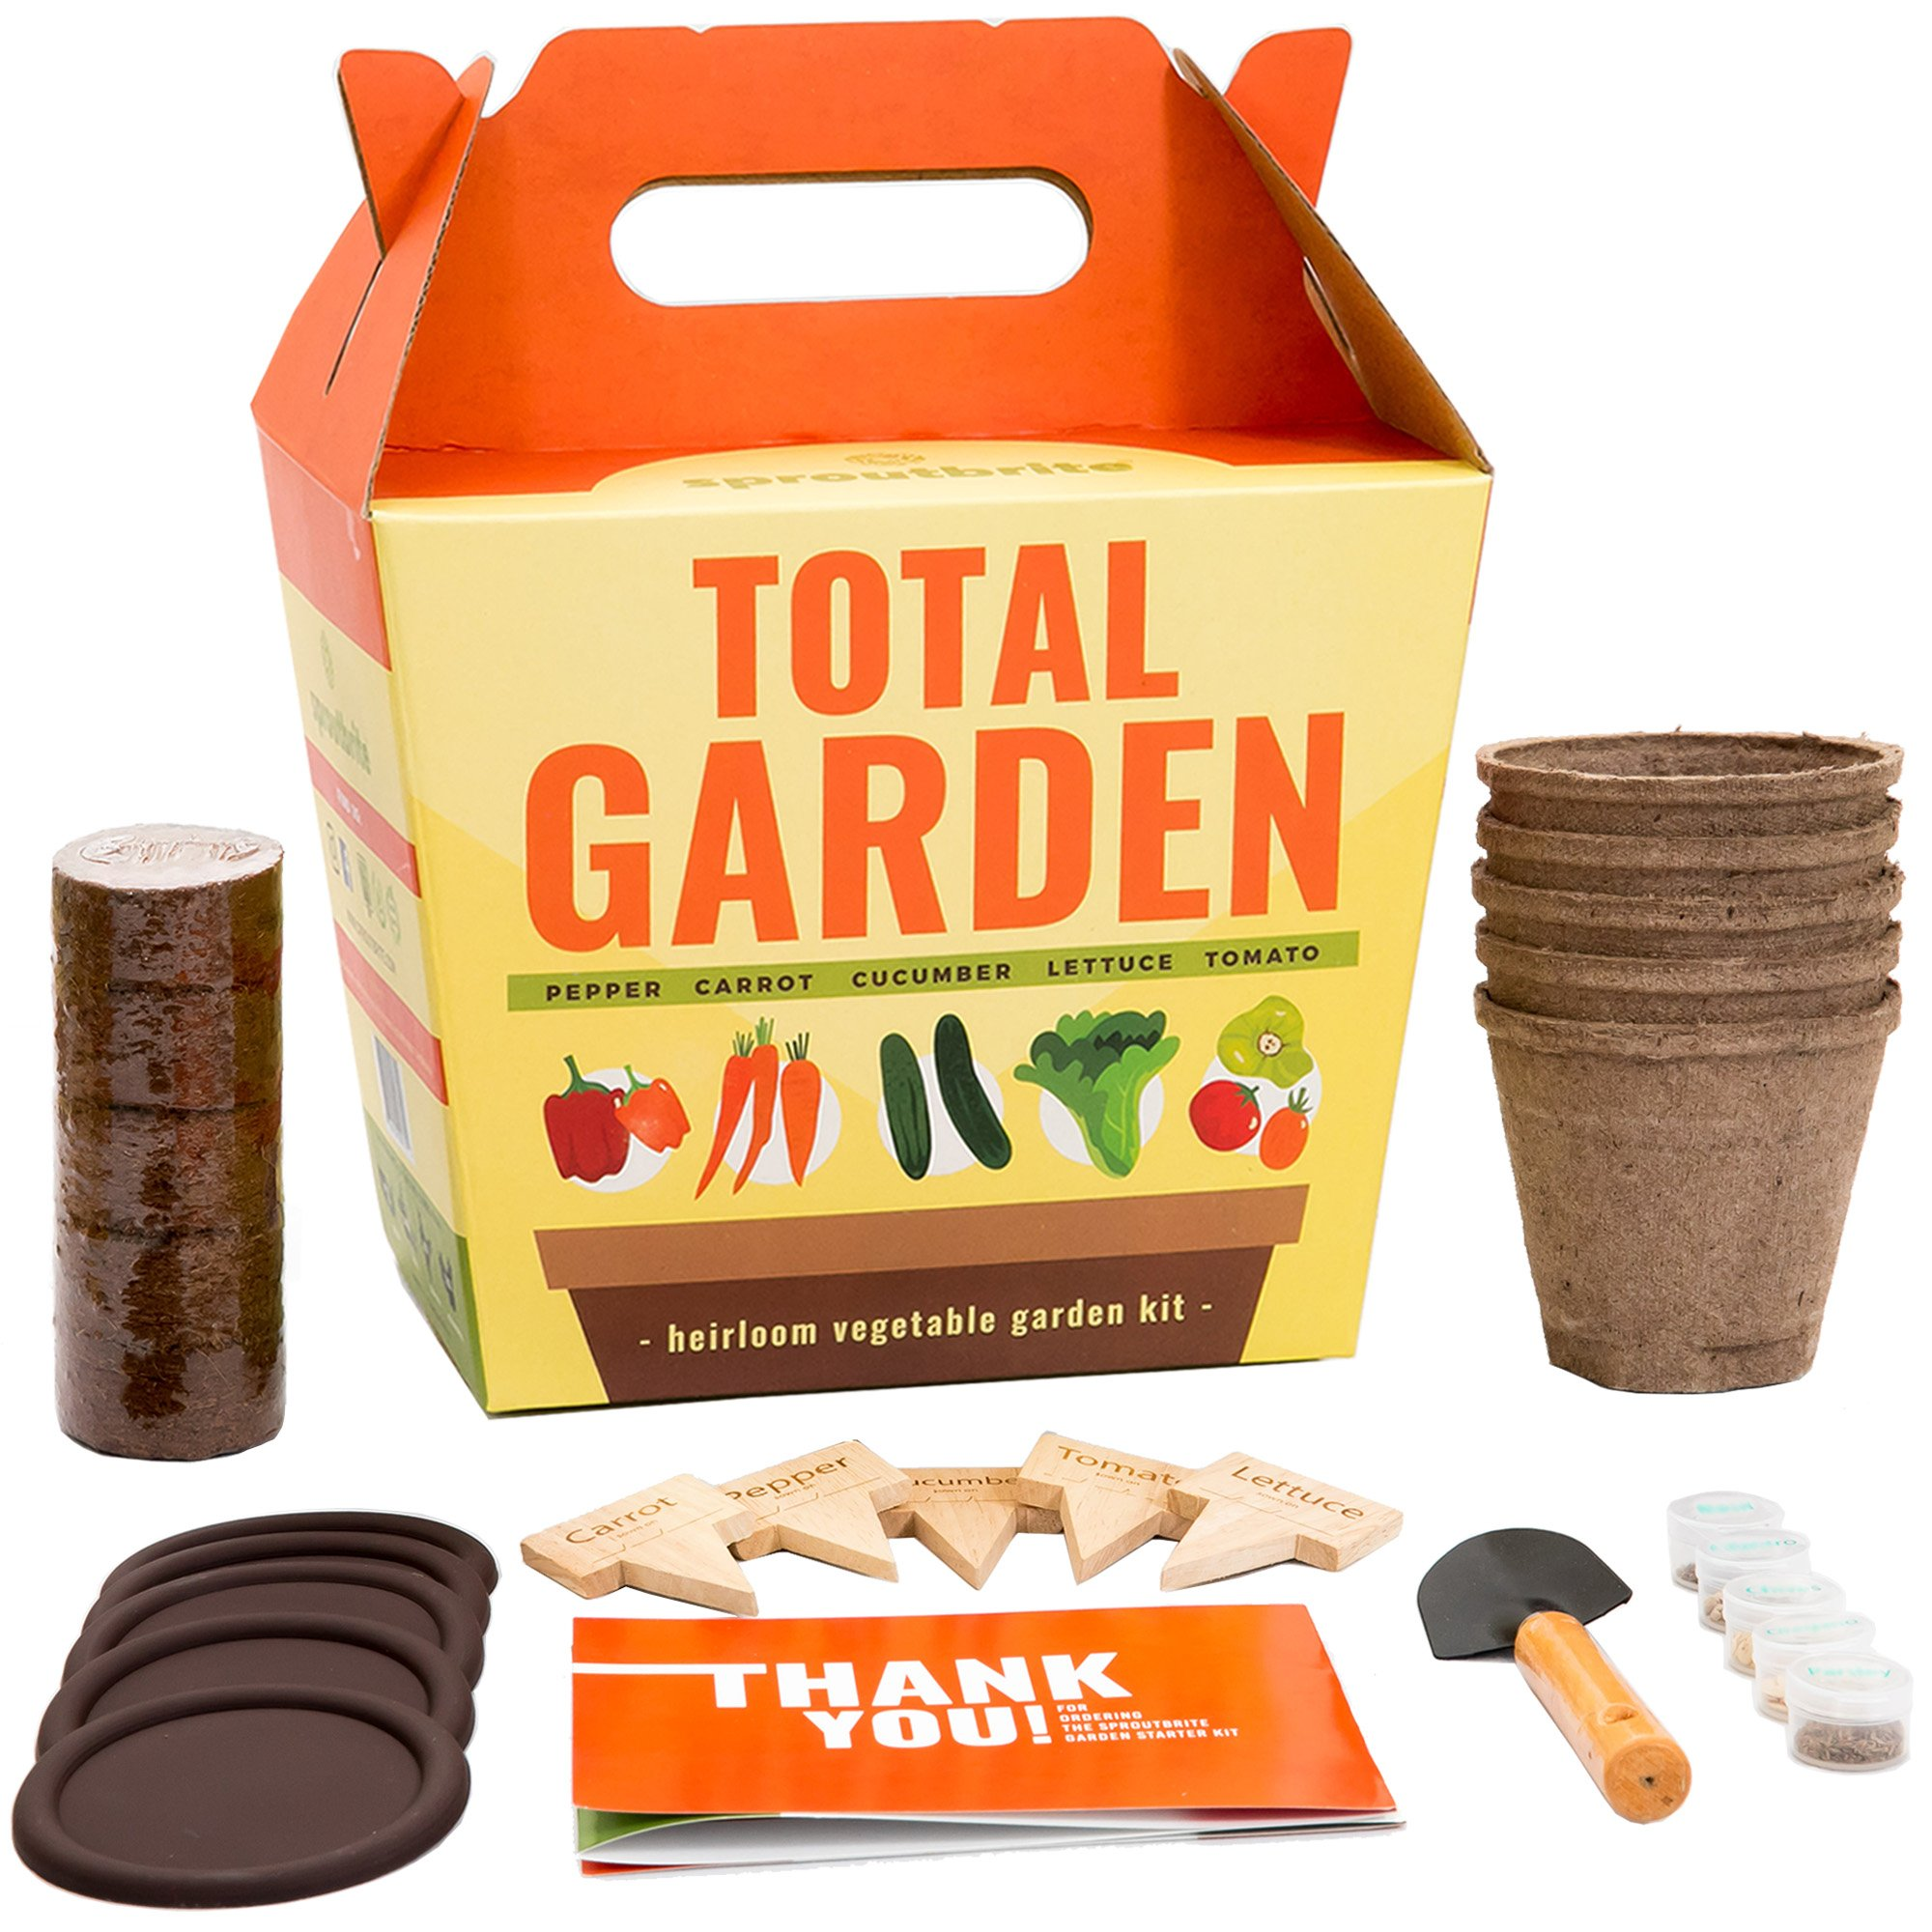 Sproutbrite Vegetable Garden Starter Kit - Grow 5 Heirloom Veggies from Organic Non GMO Seed - A Complete Gardening Gift kit for Growing Indoors or Outdoors